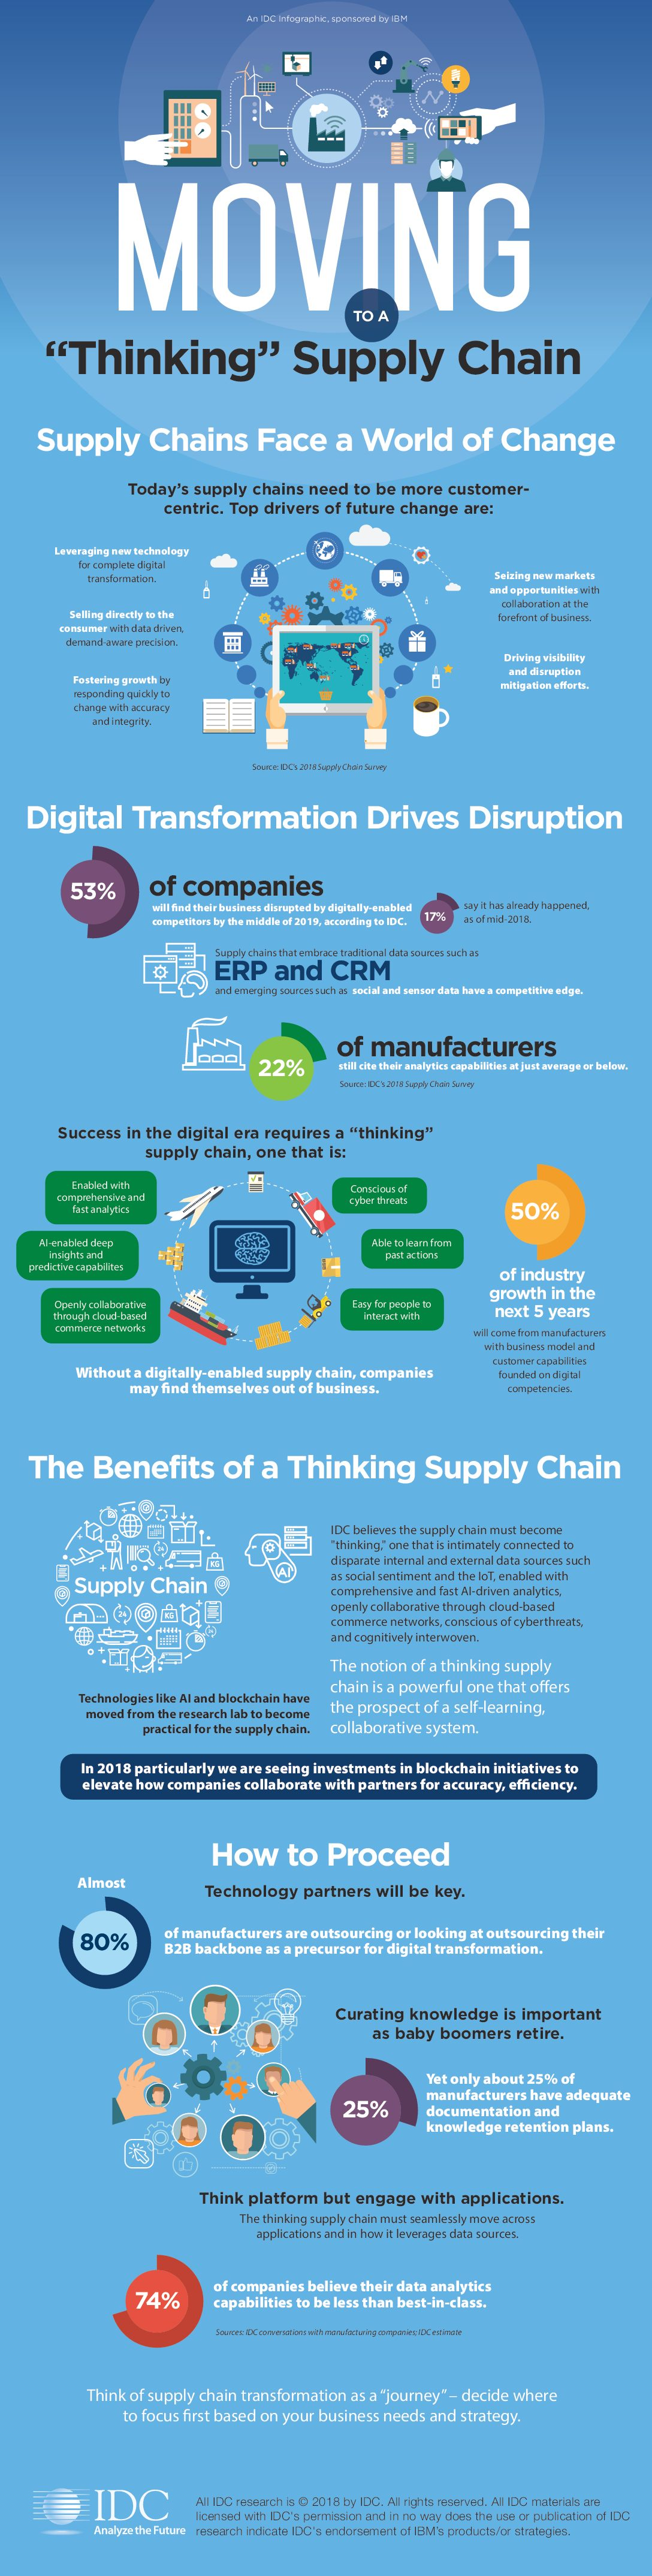 The Path to a Thinking Supply Chain